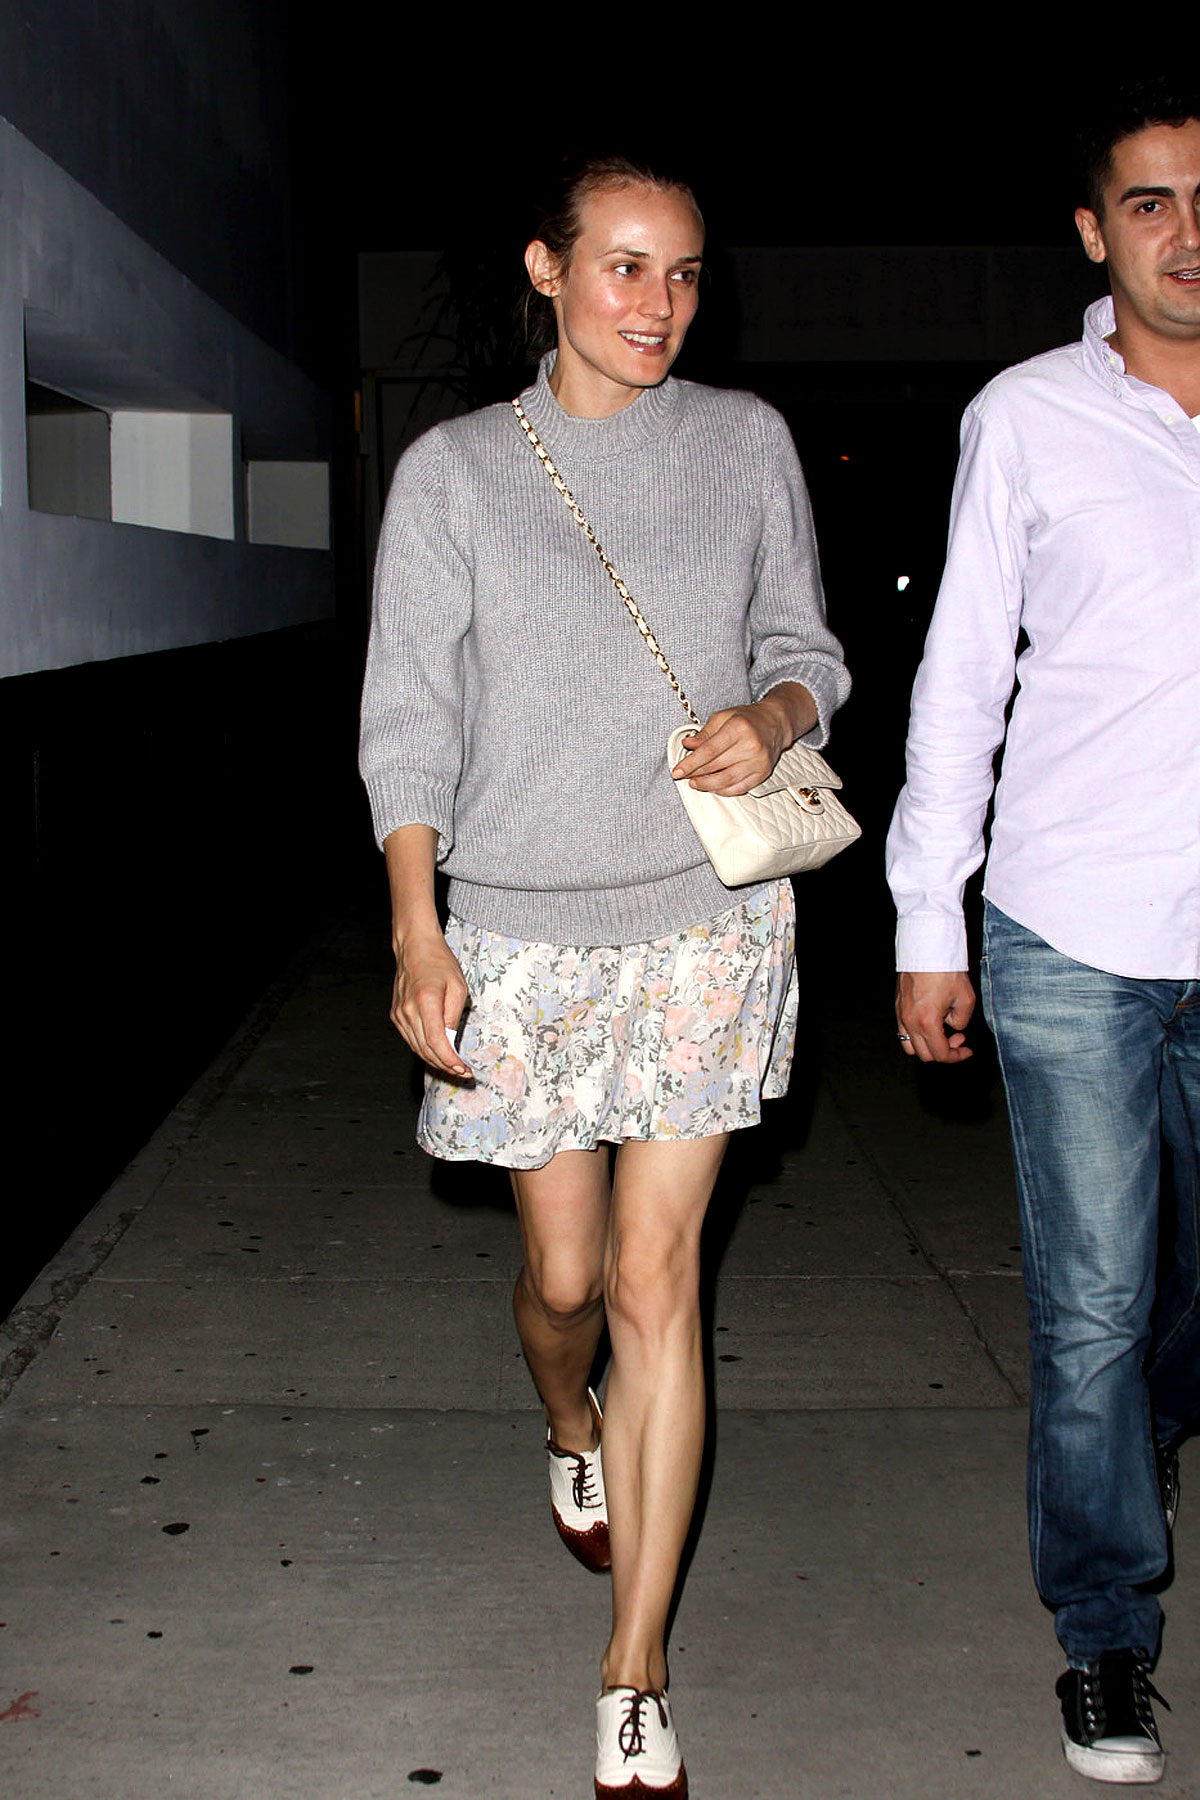 Fashion FTW: Diane Kruger Is So Trendy (PHOTOS)